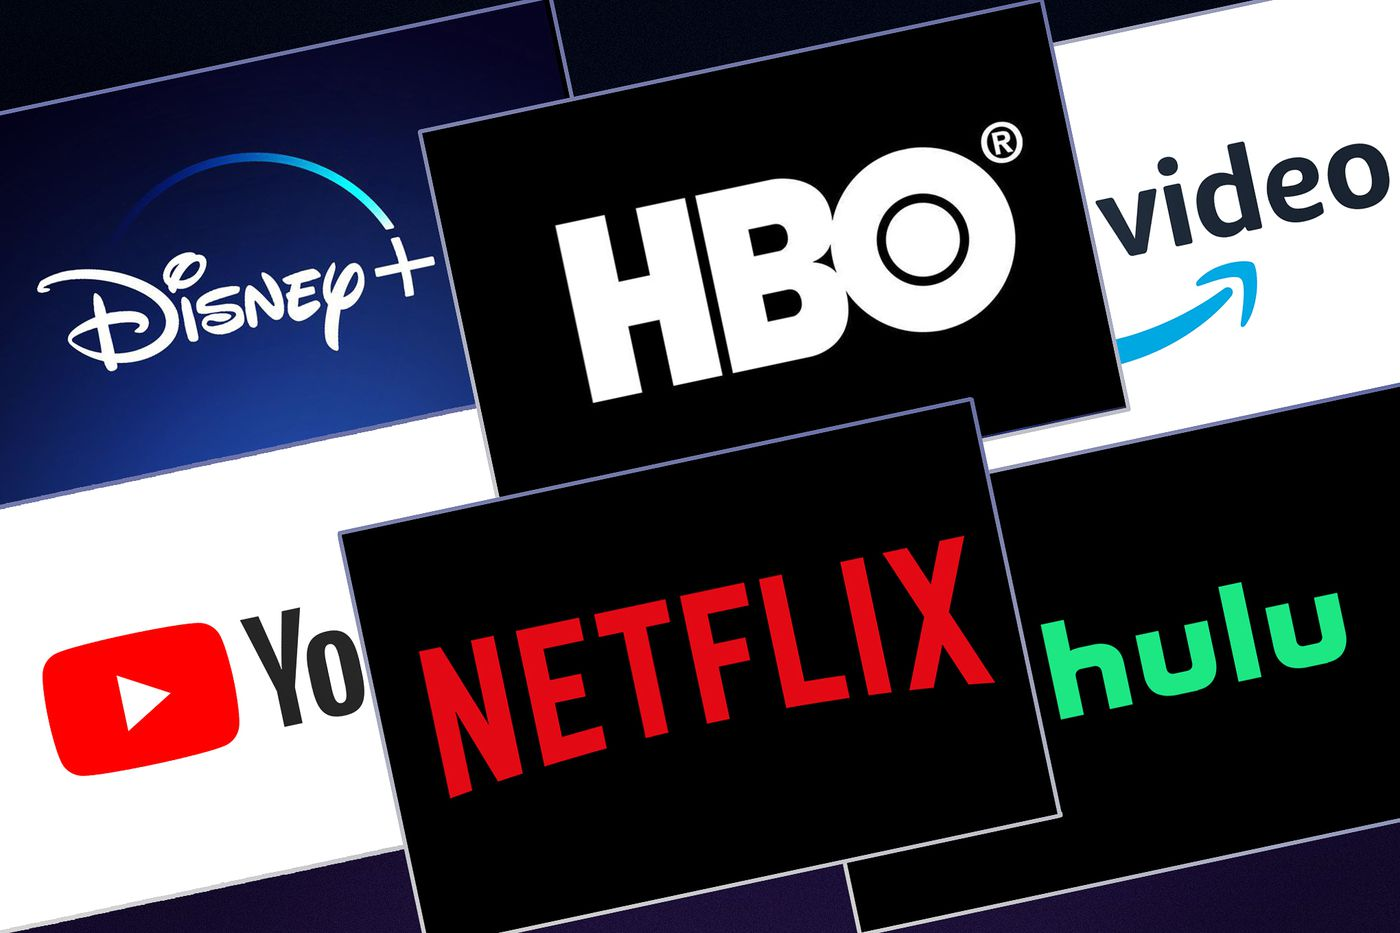 8 best ways to watch movies together on Netflix, Disney, Hulu and more -  Polygon